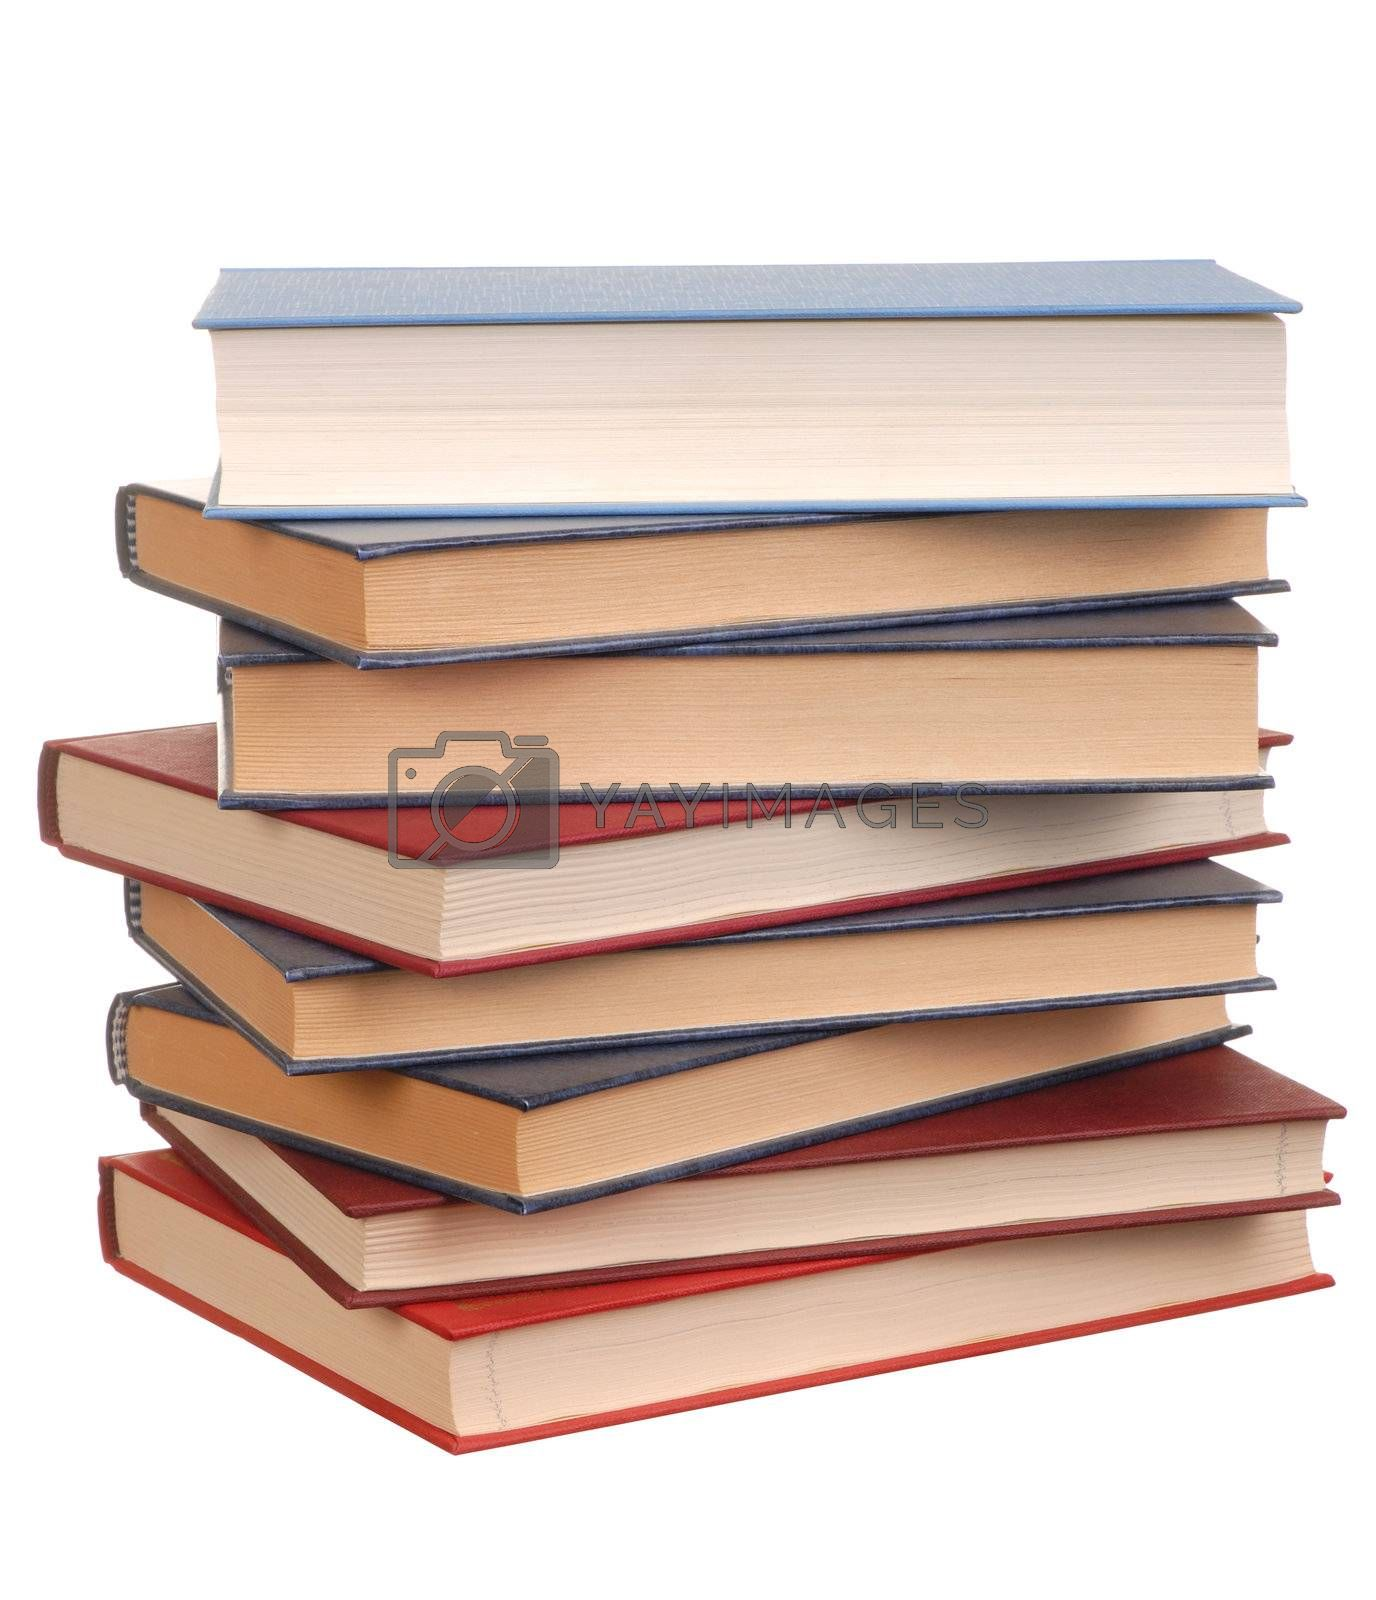 Books stack isolated on white background